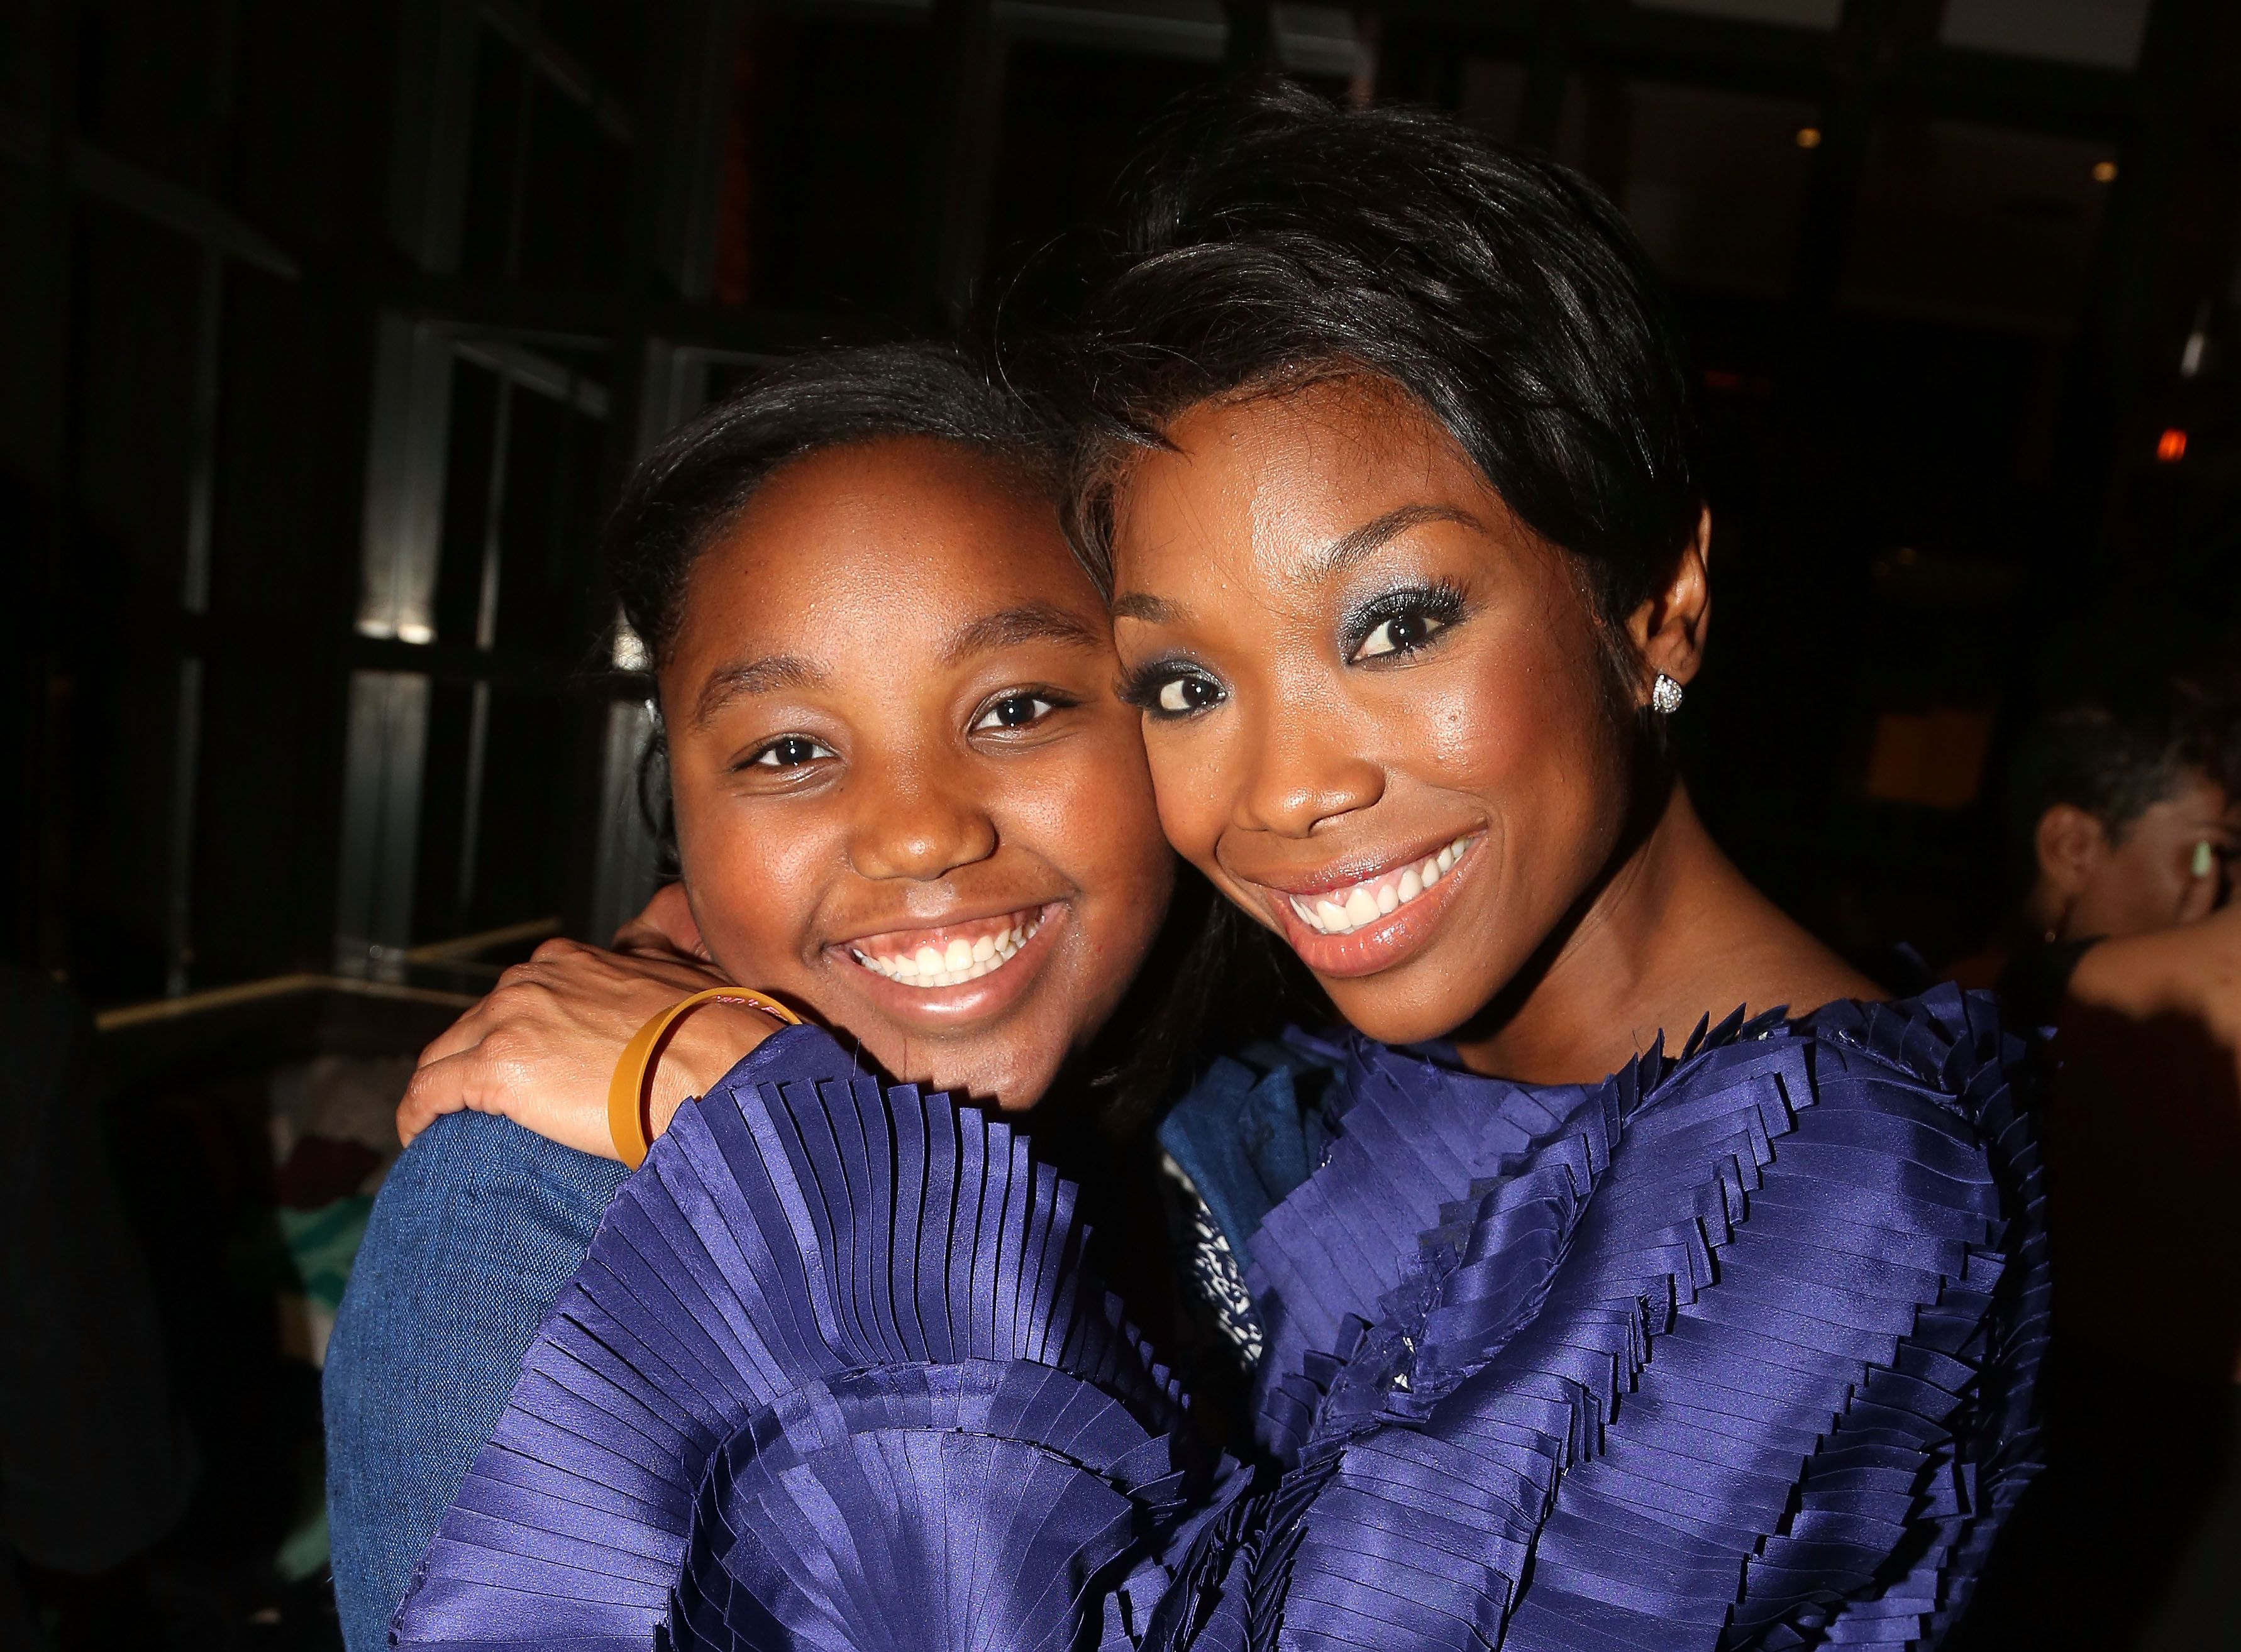 """Brandy Norwood and daughter at the Opening Night After Party for Brandy's debut in """"Chicago"""" on April 30, 2015 in N.Y. 